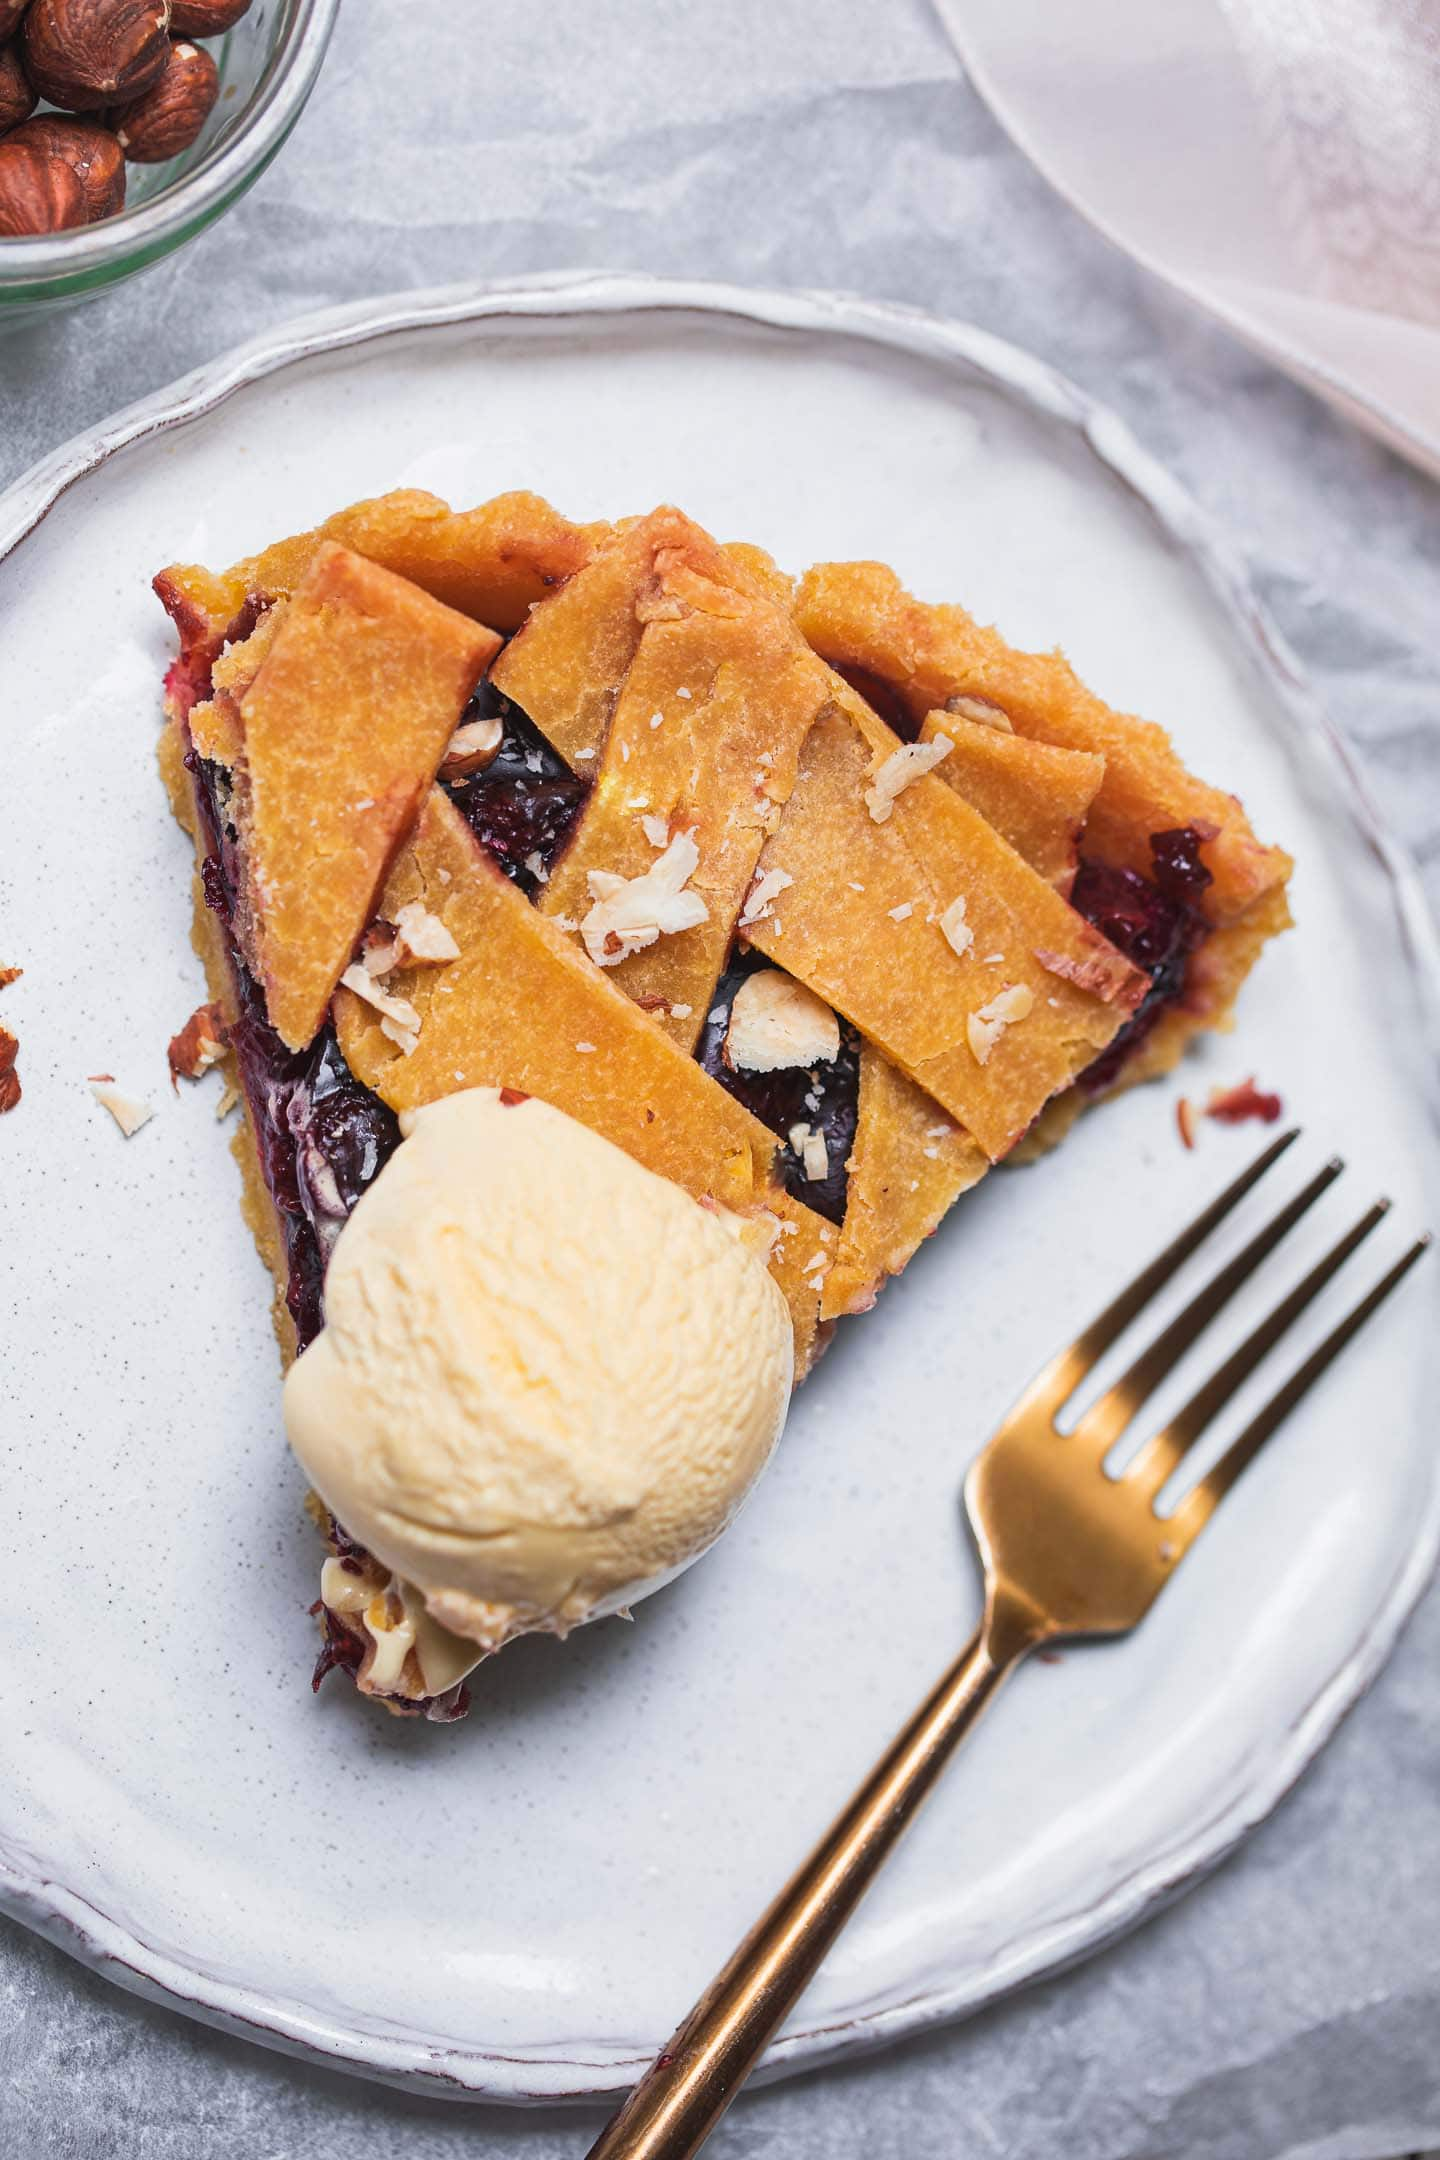 Slice of gluten-free vegan cherry pie with dairy-free ice cream